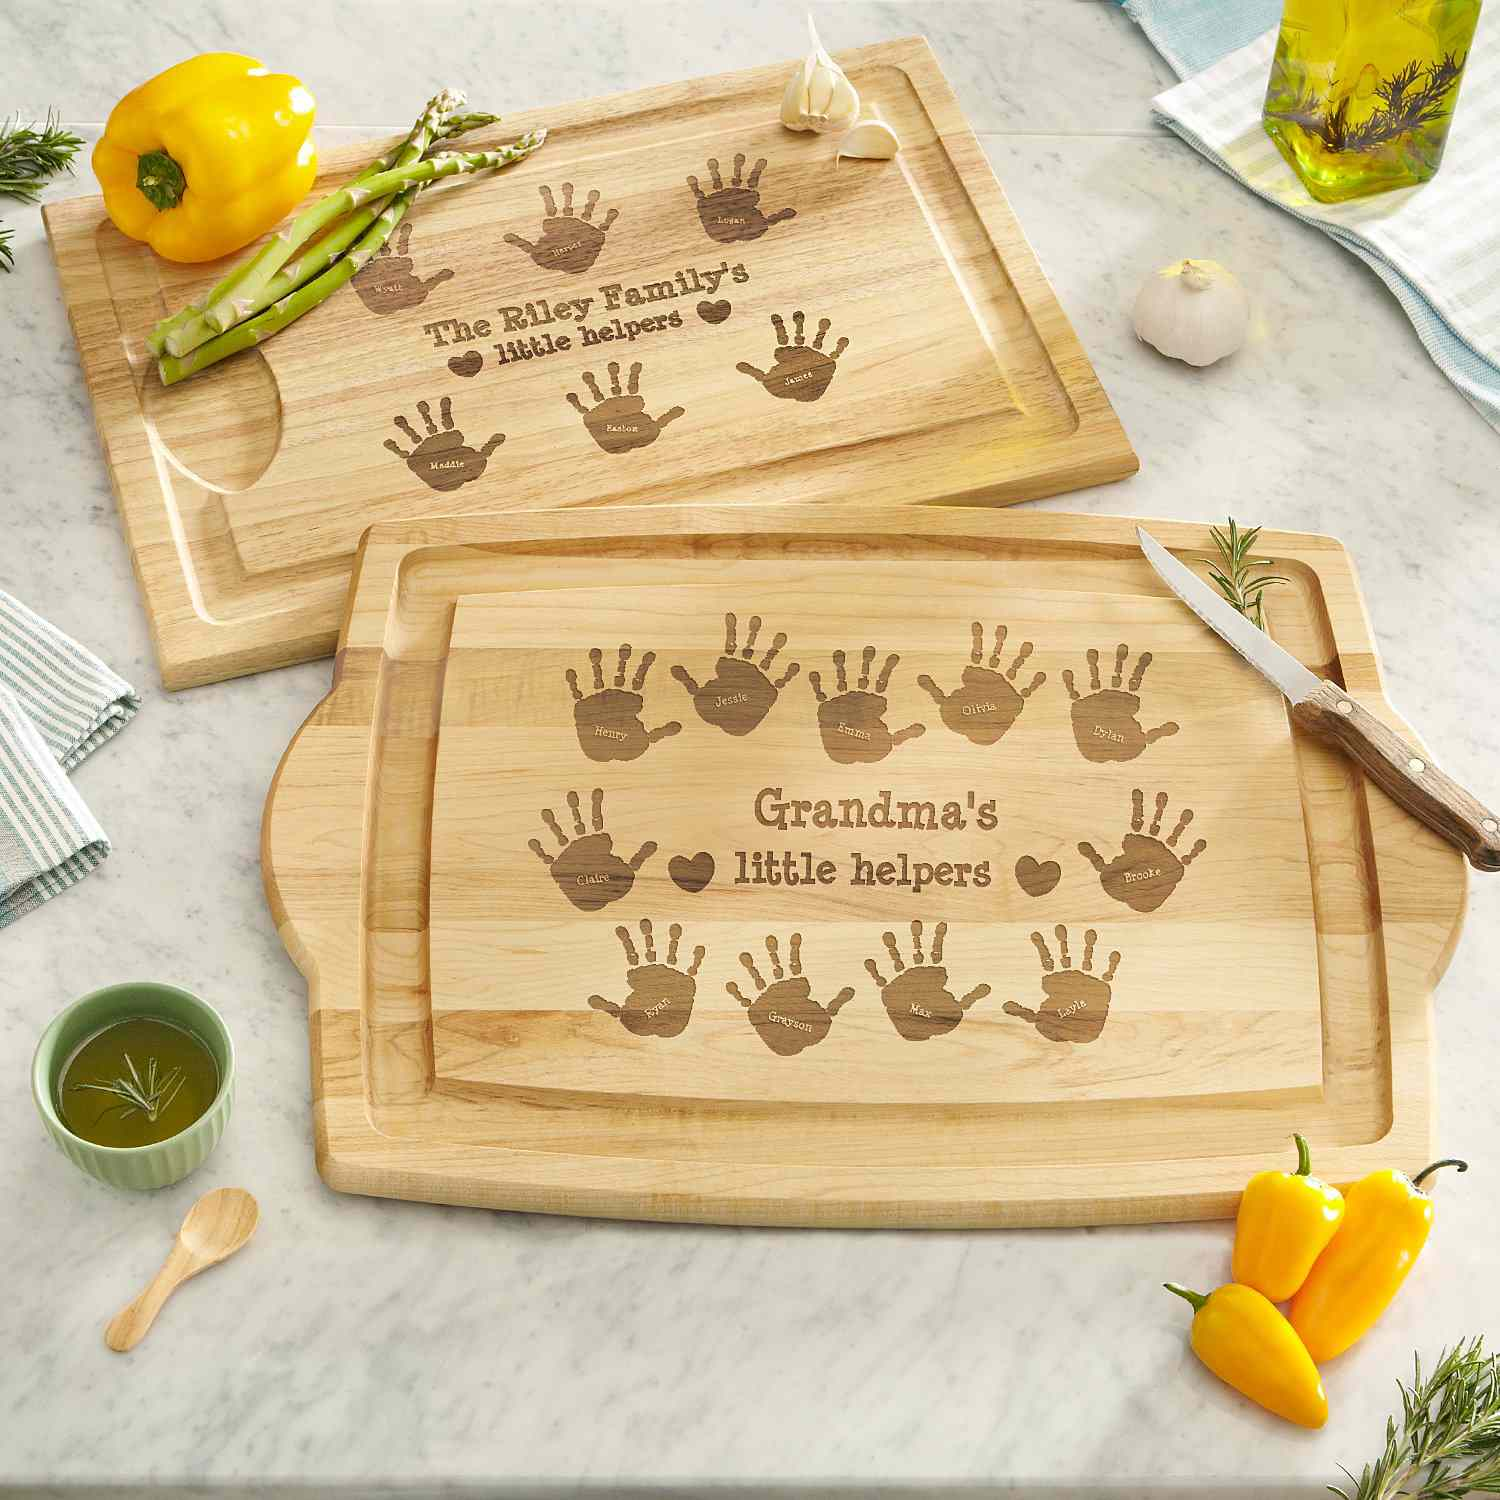 Personal Creations Kitchen Helpers Wood Cutting Board